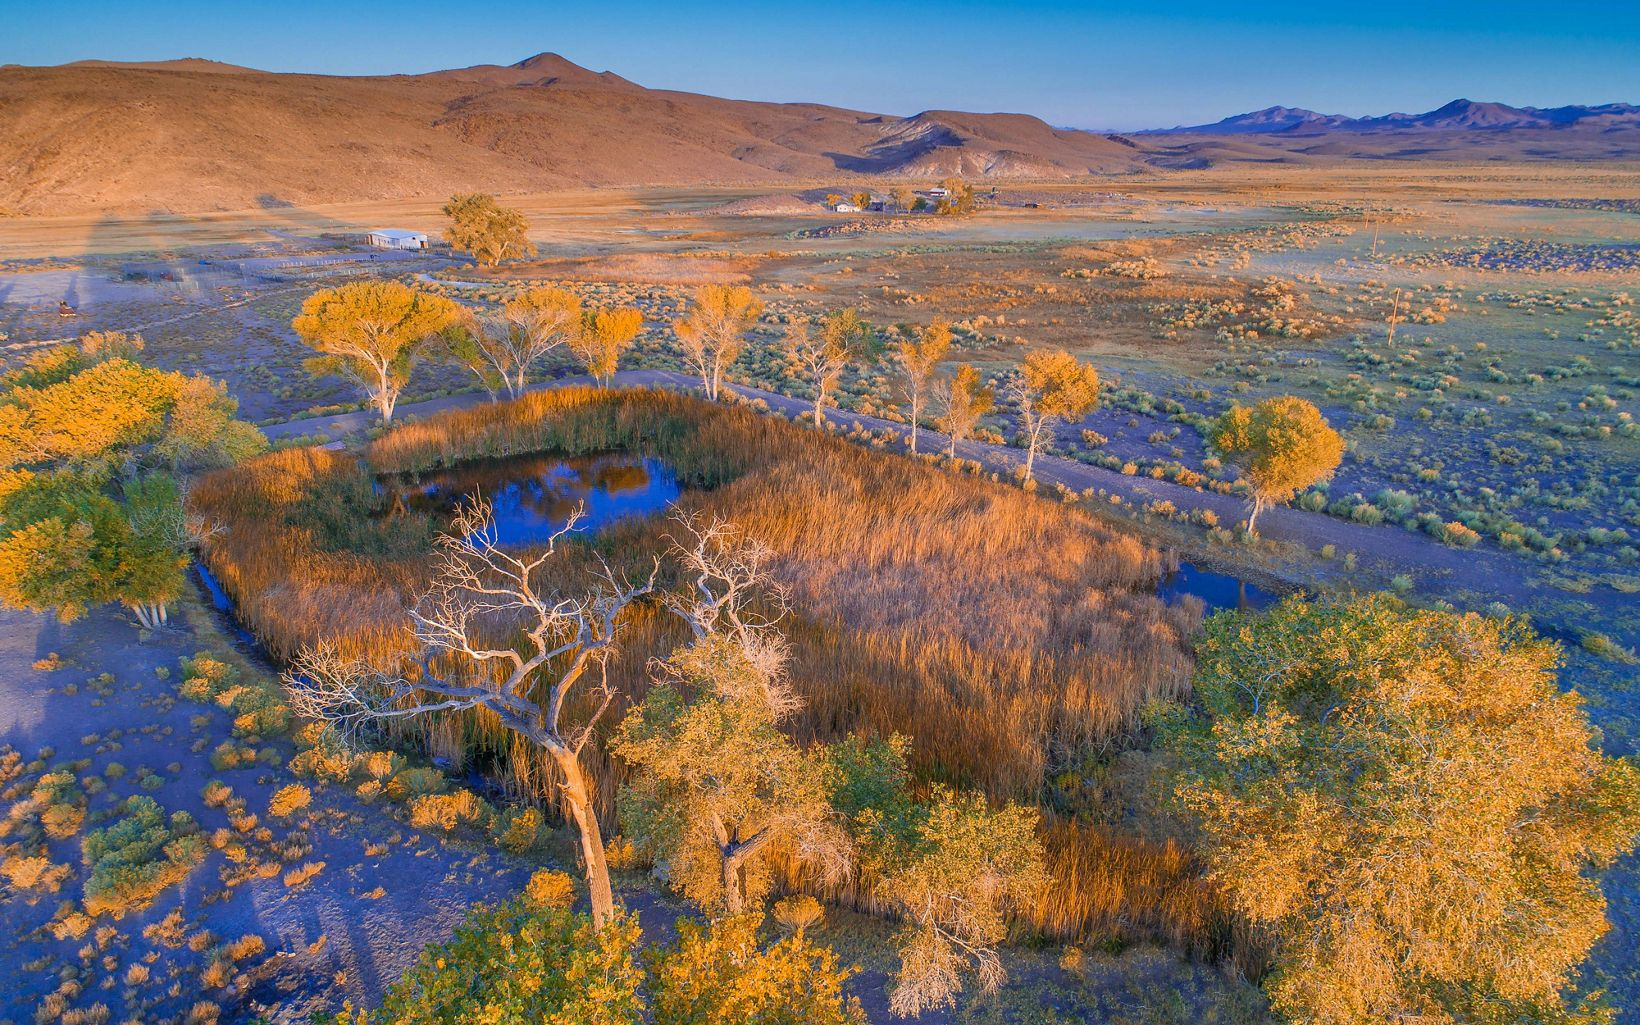 The 7J Ranch contains the headwaters of the Amargosa River, one of the country's largest hotspots for biodiversity.